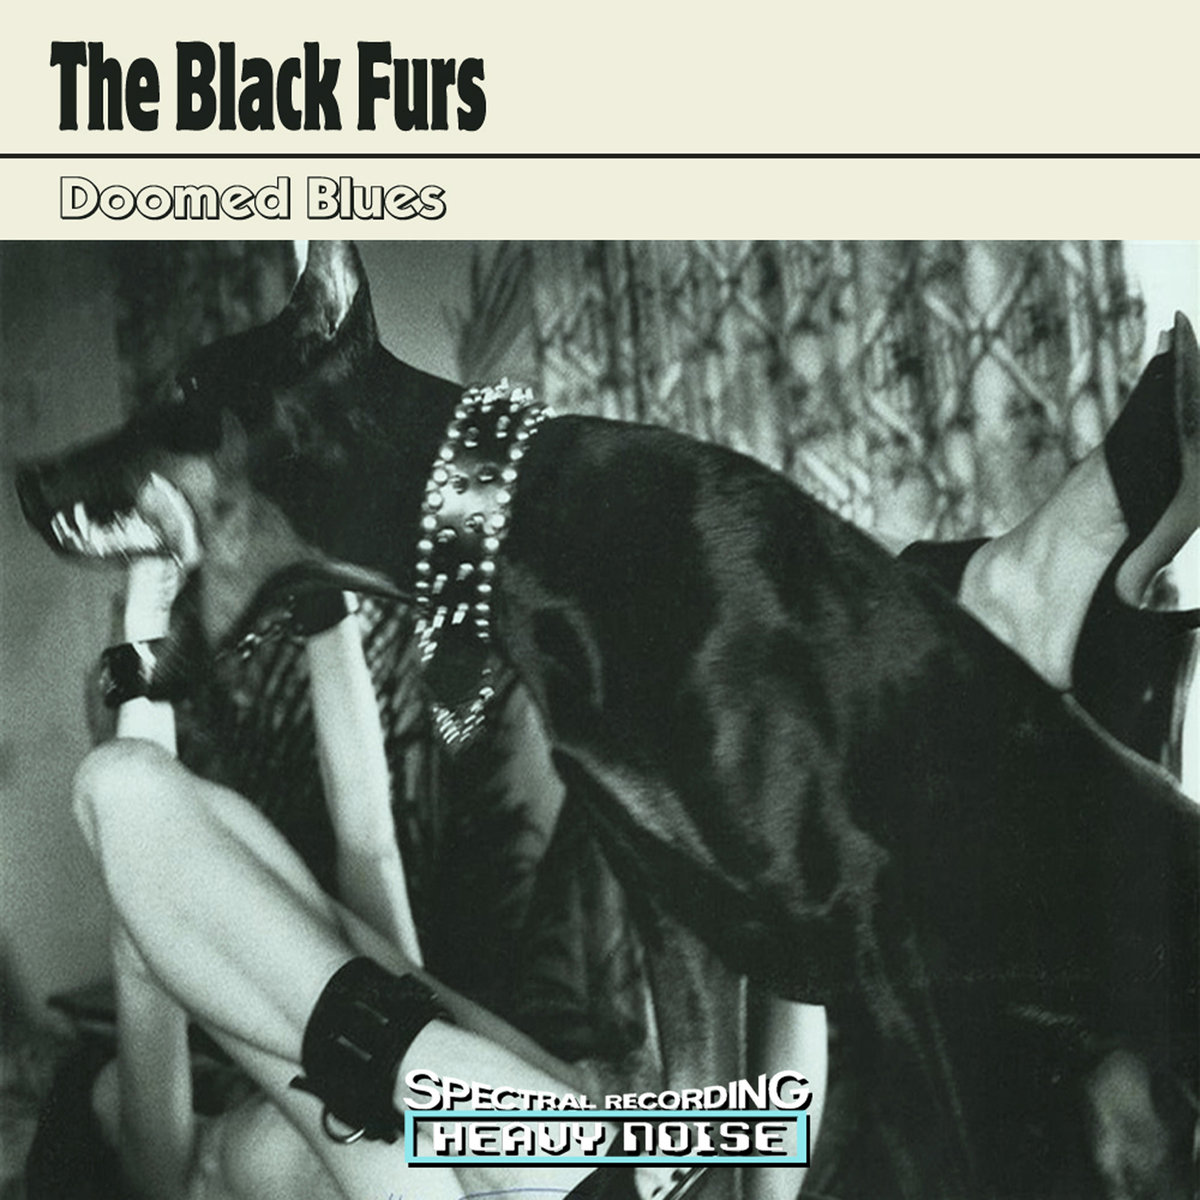 The Black Furs - Doomed Blues